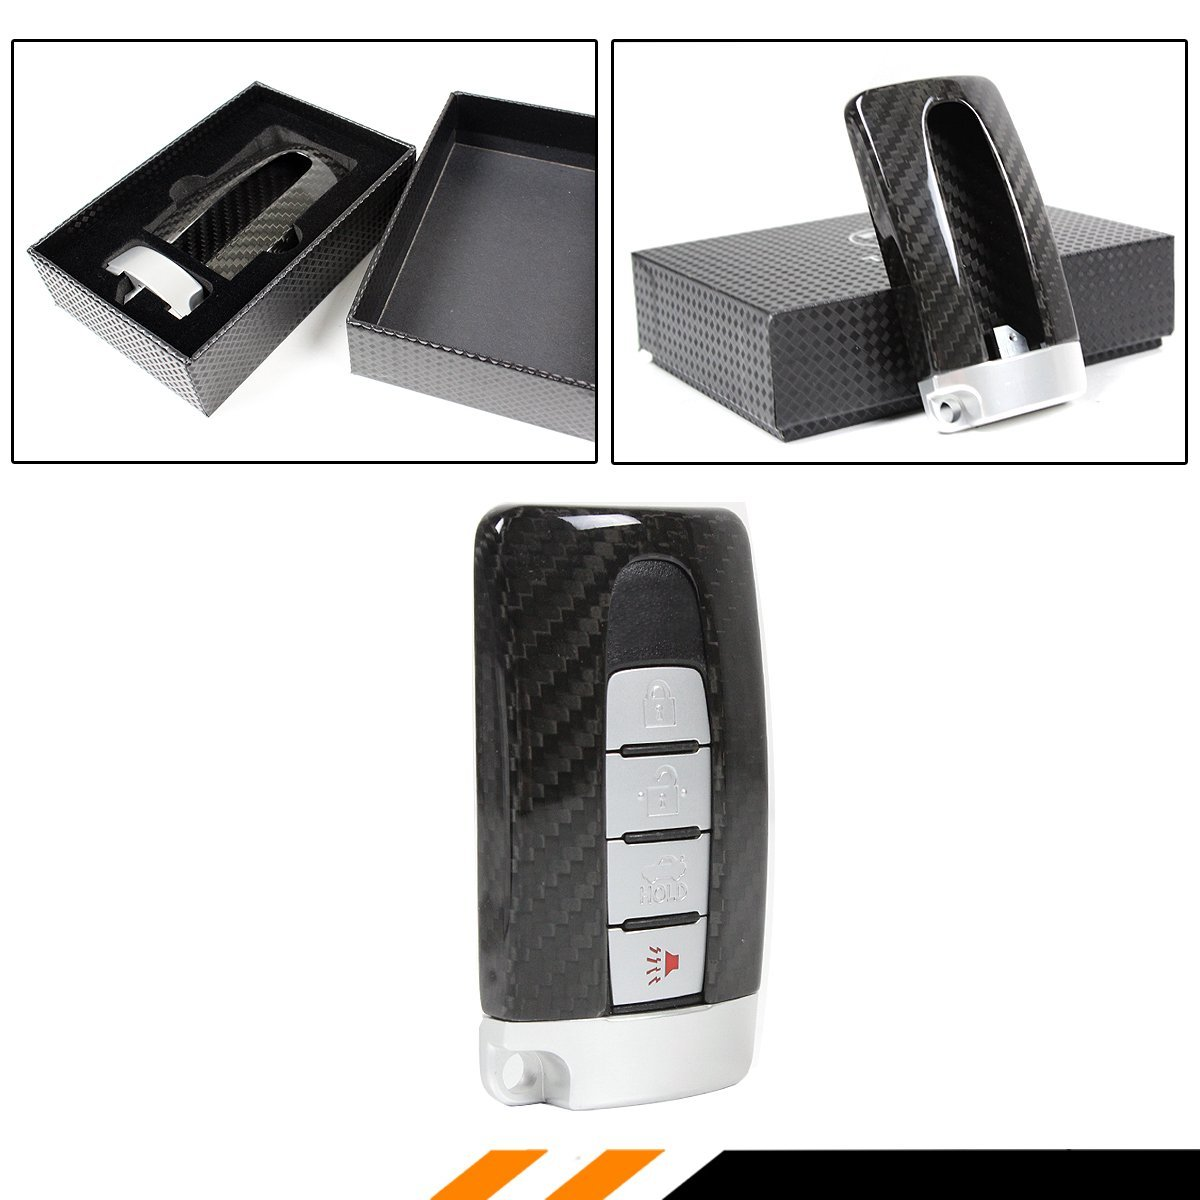 REAL CARBON FIBER GTR STYLE CASE COVER WITH SILVER BASE FOR INFINITI SMART KEY FOB